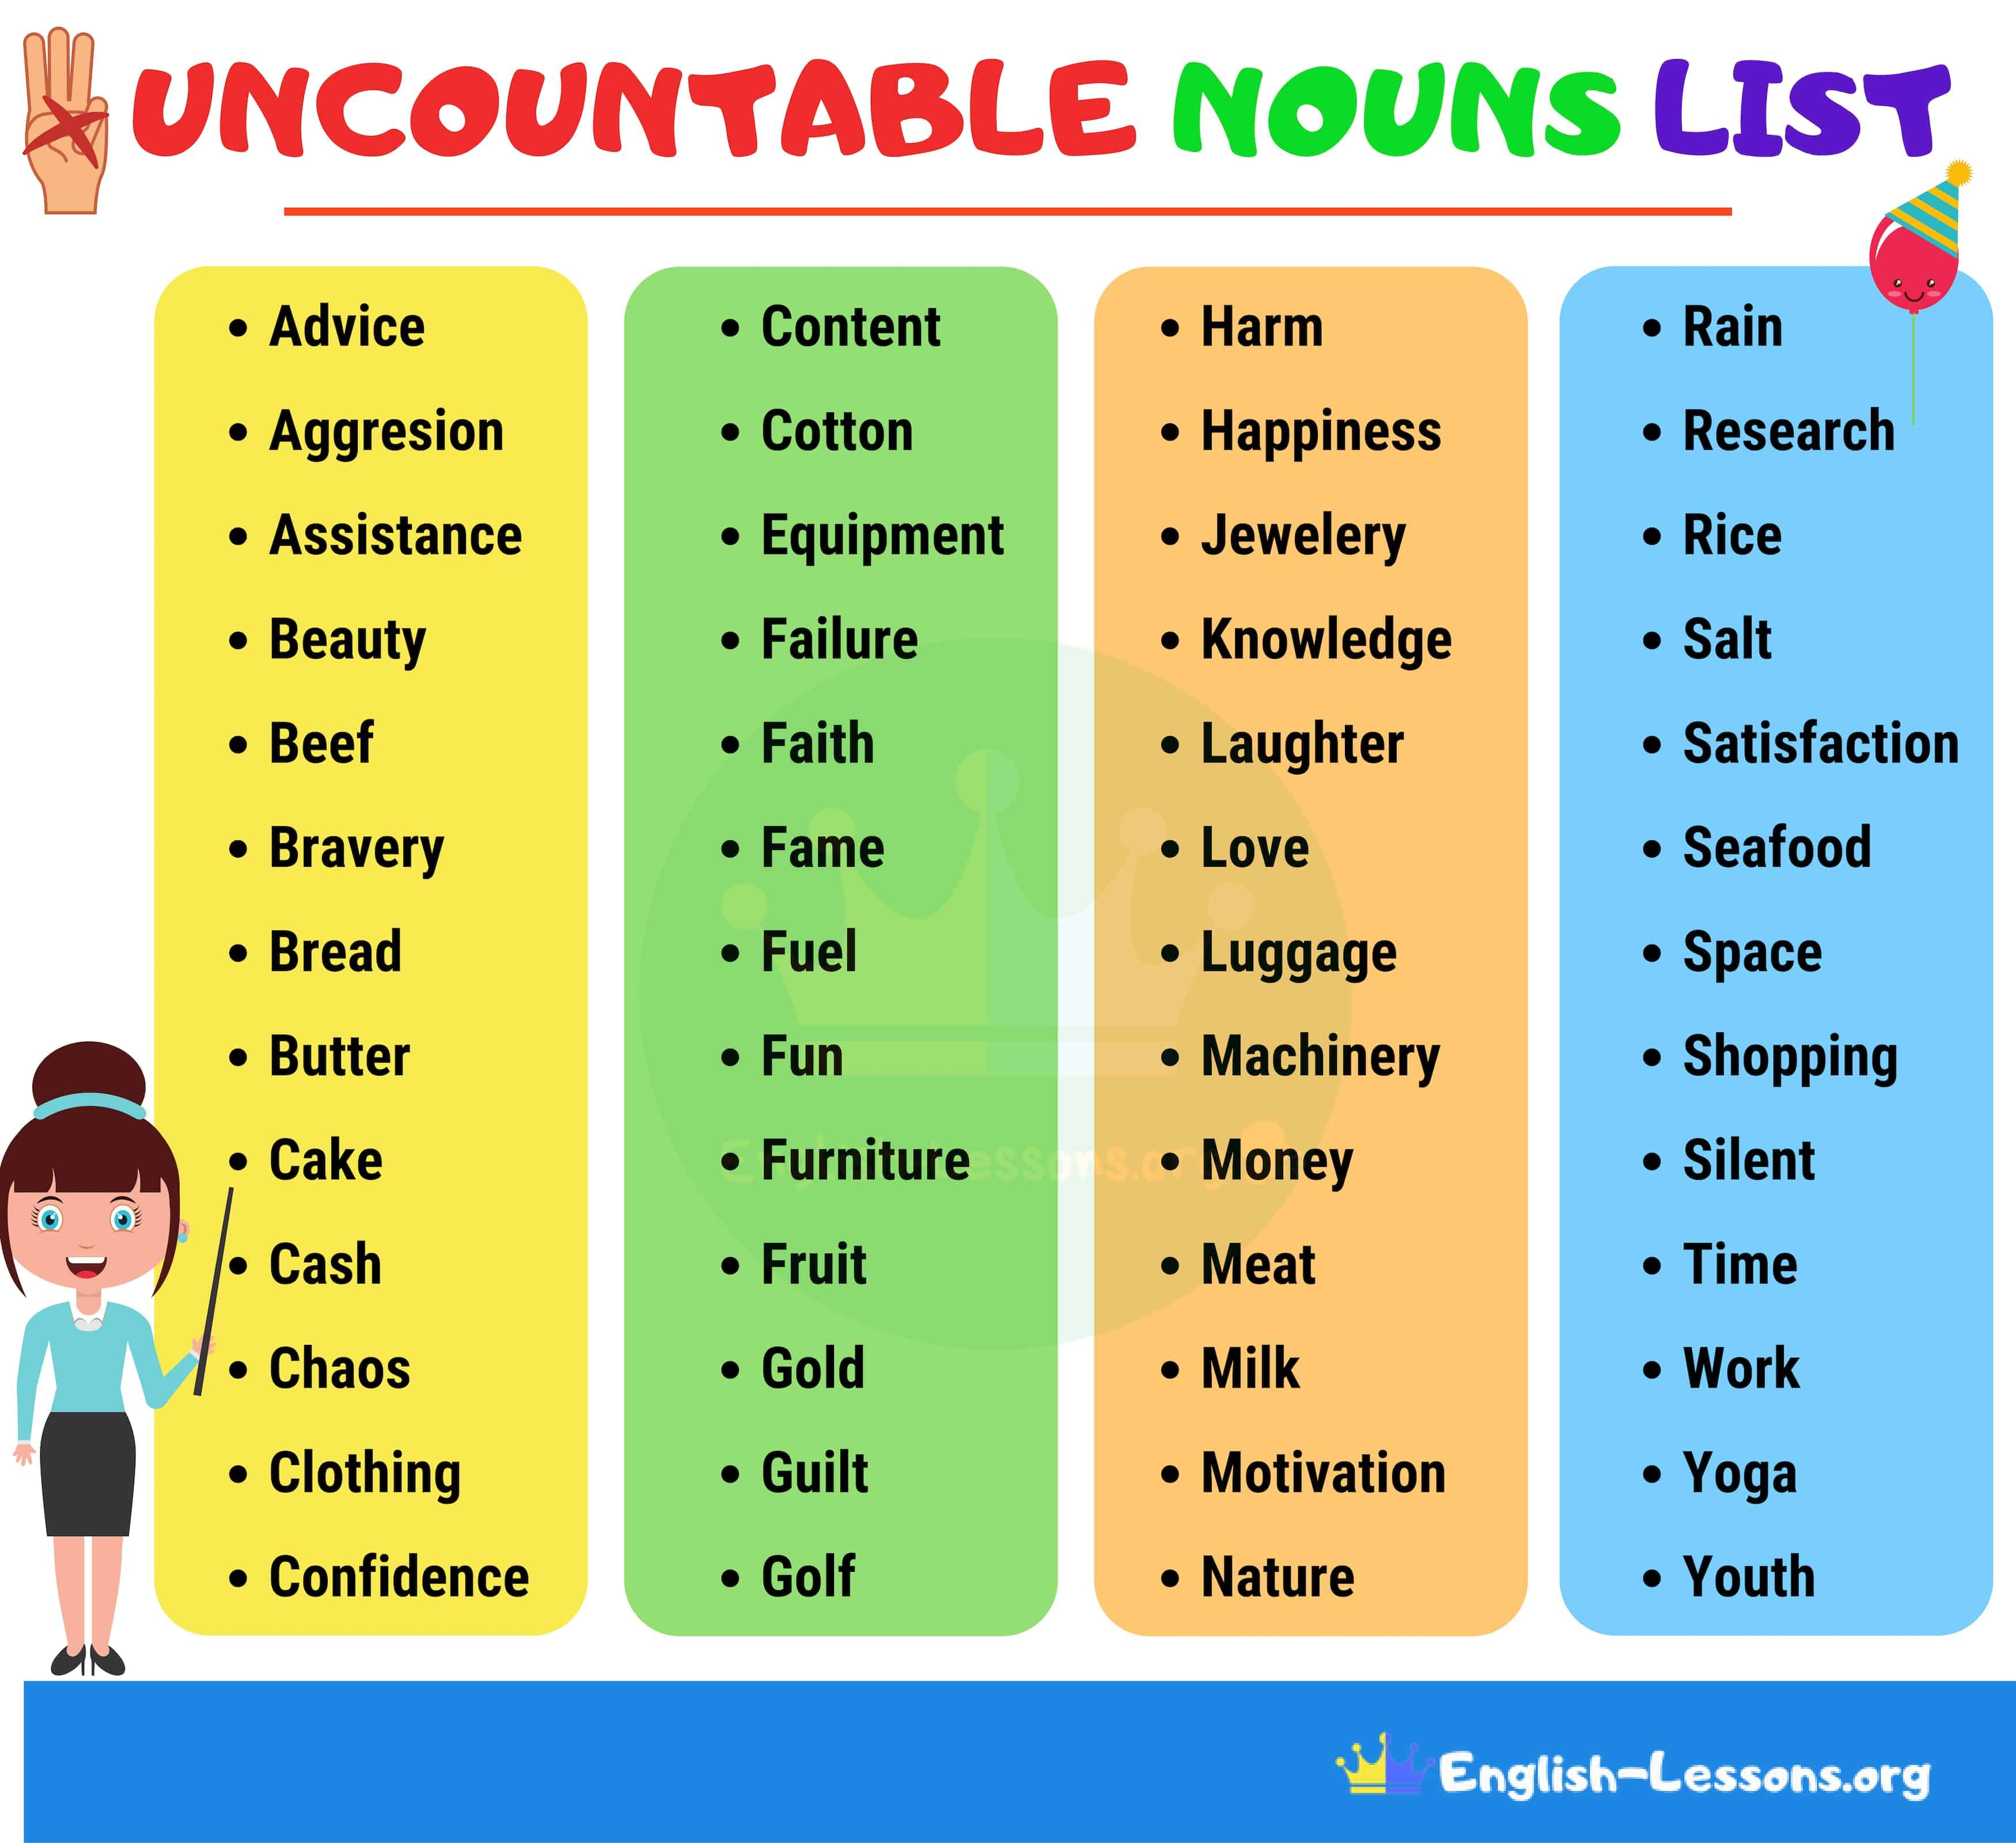 List Of Common Uncountable Nouns In English Uncountable Nouns Nouns English Lessons